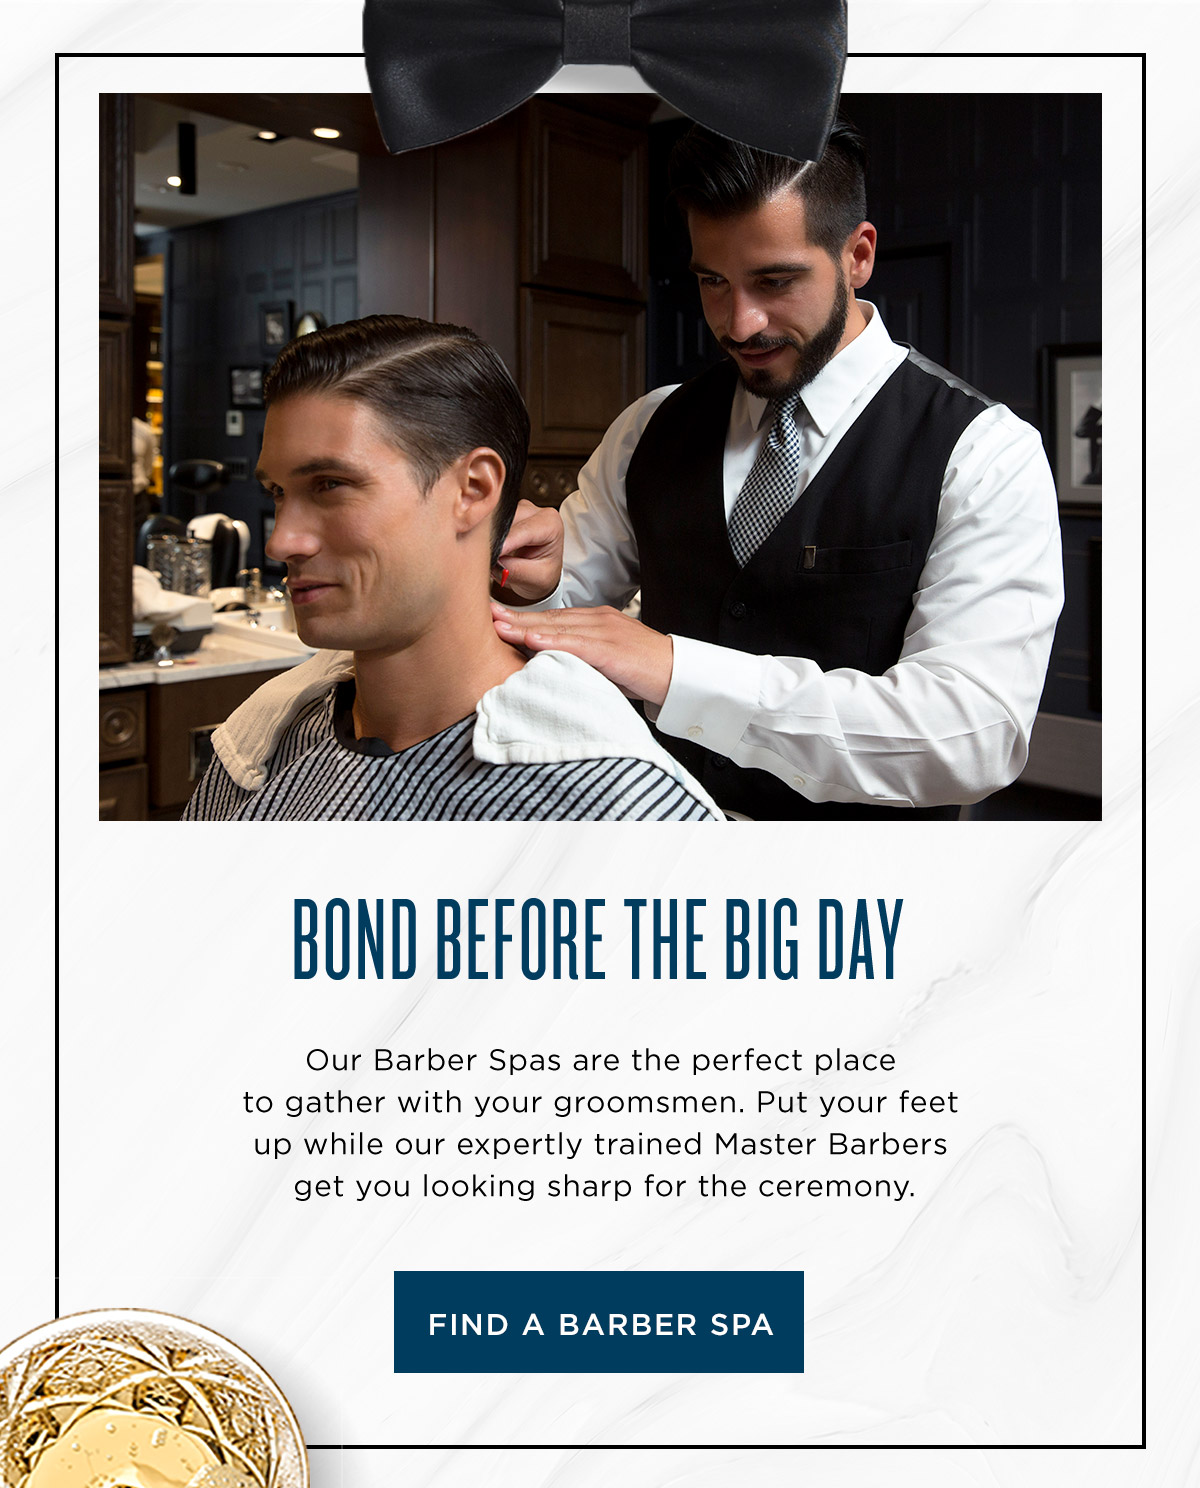 Bond Before the Big Day - Find a Barber Spa